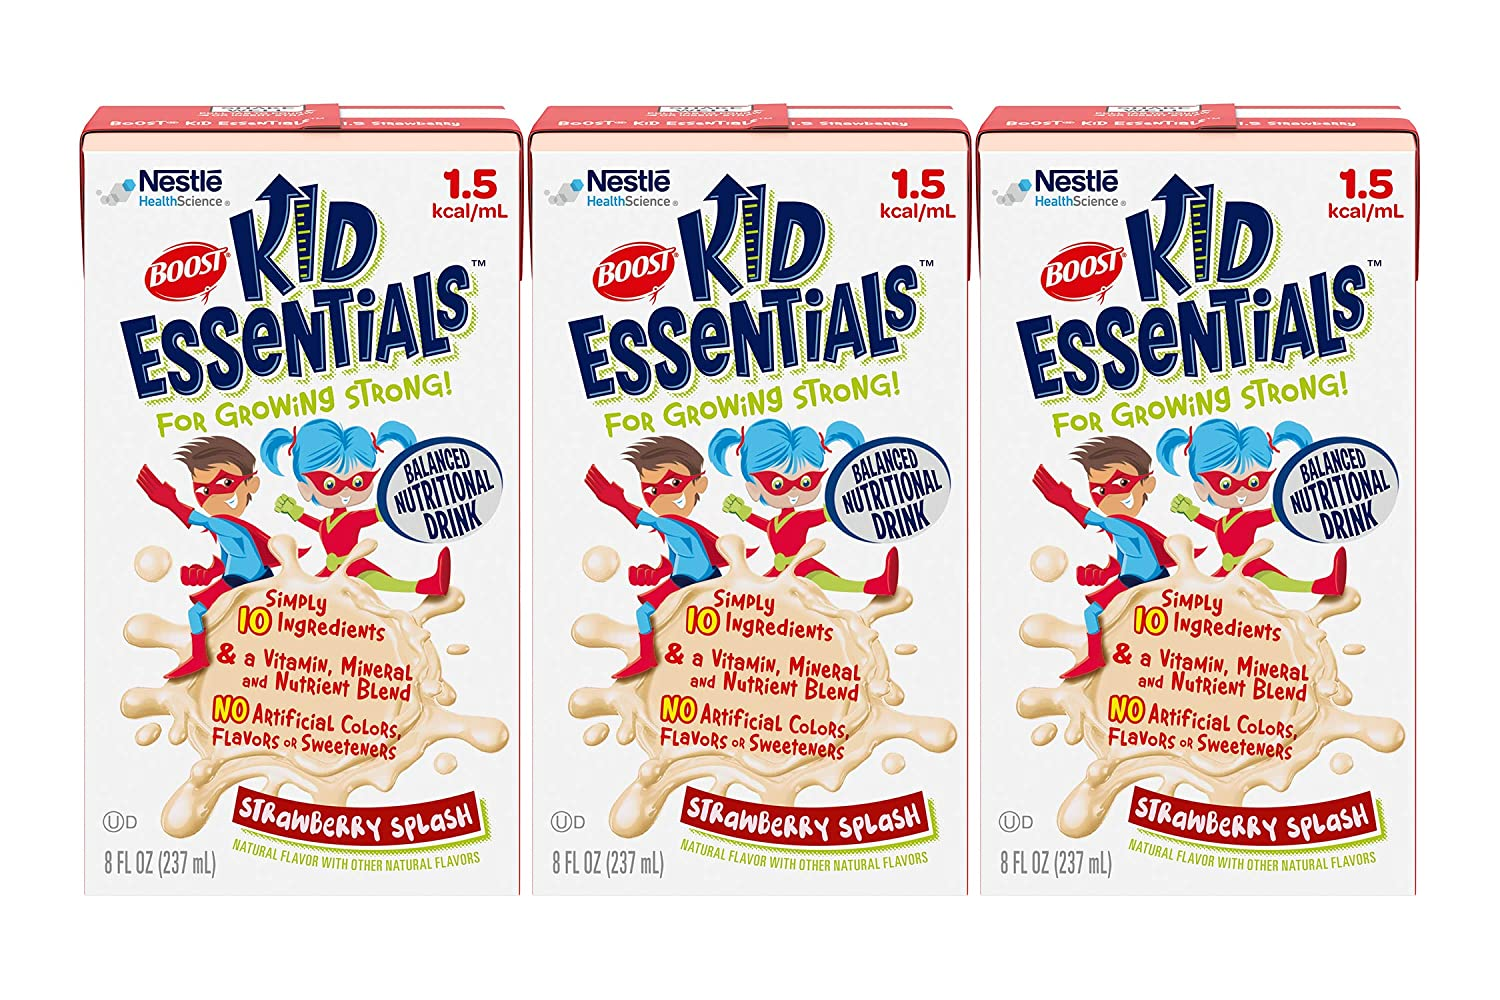 Boost Kid Essentials 1.5 Balanced Branded goods Nutritional Drink OFFicial shop Strawberry